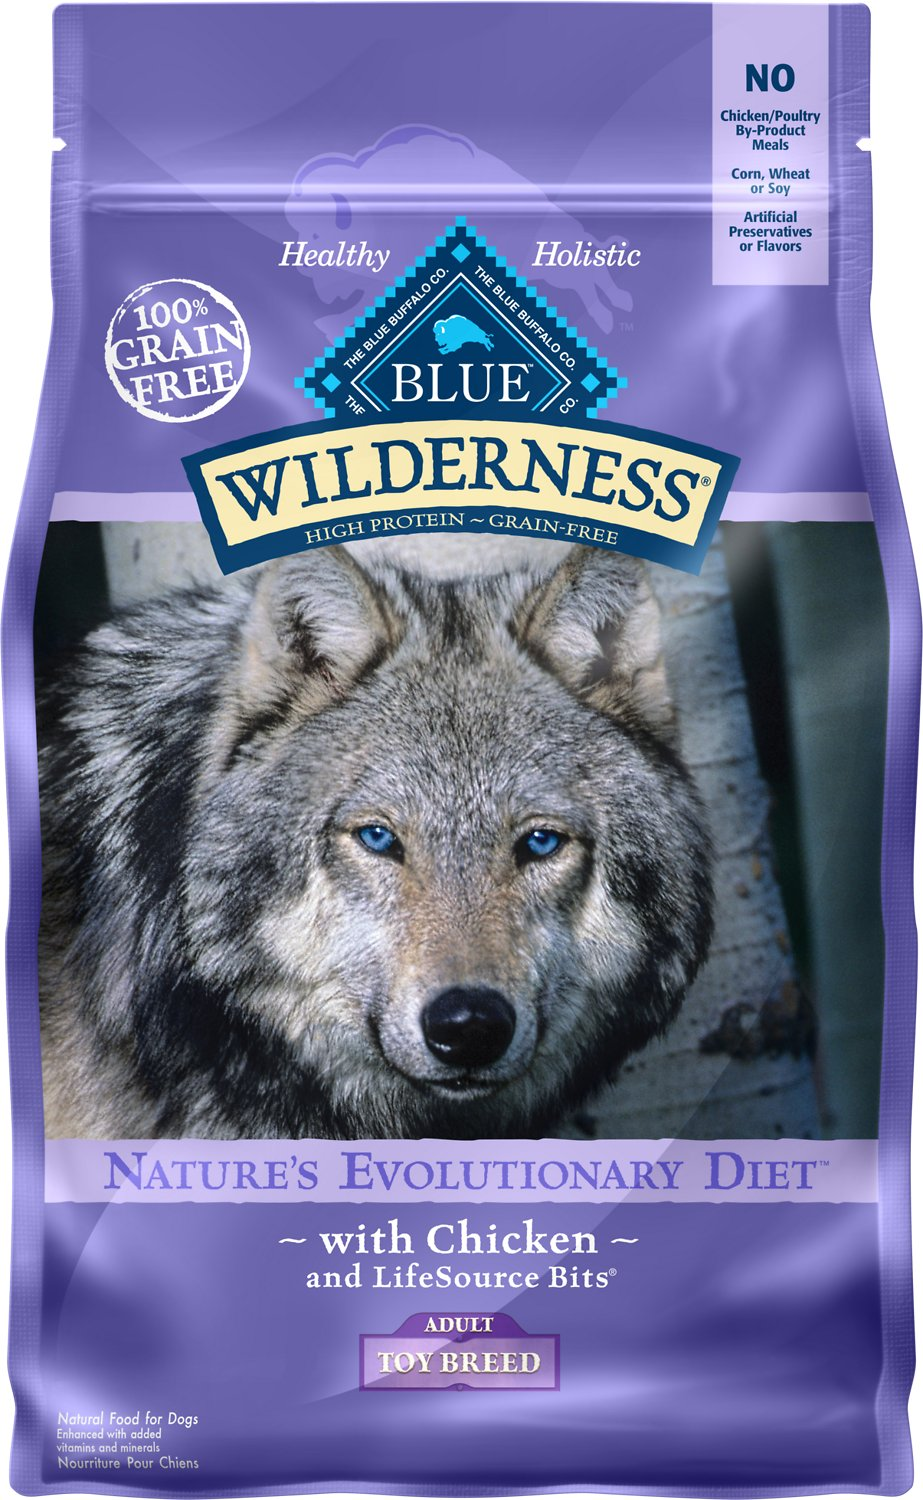 Blue Bag Dog Food